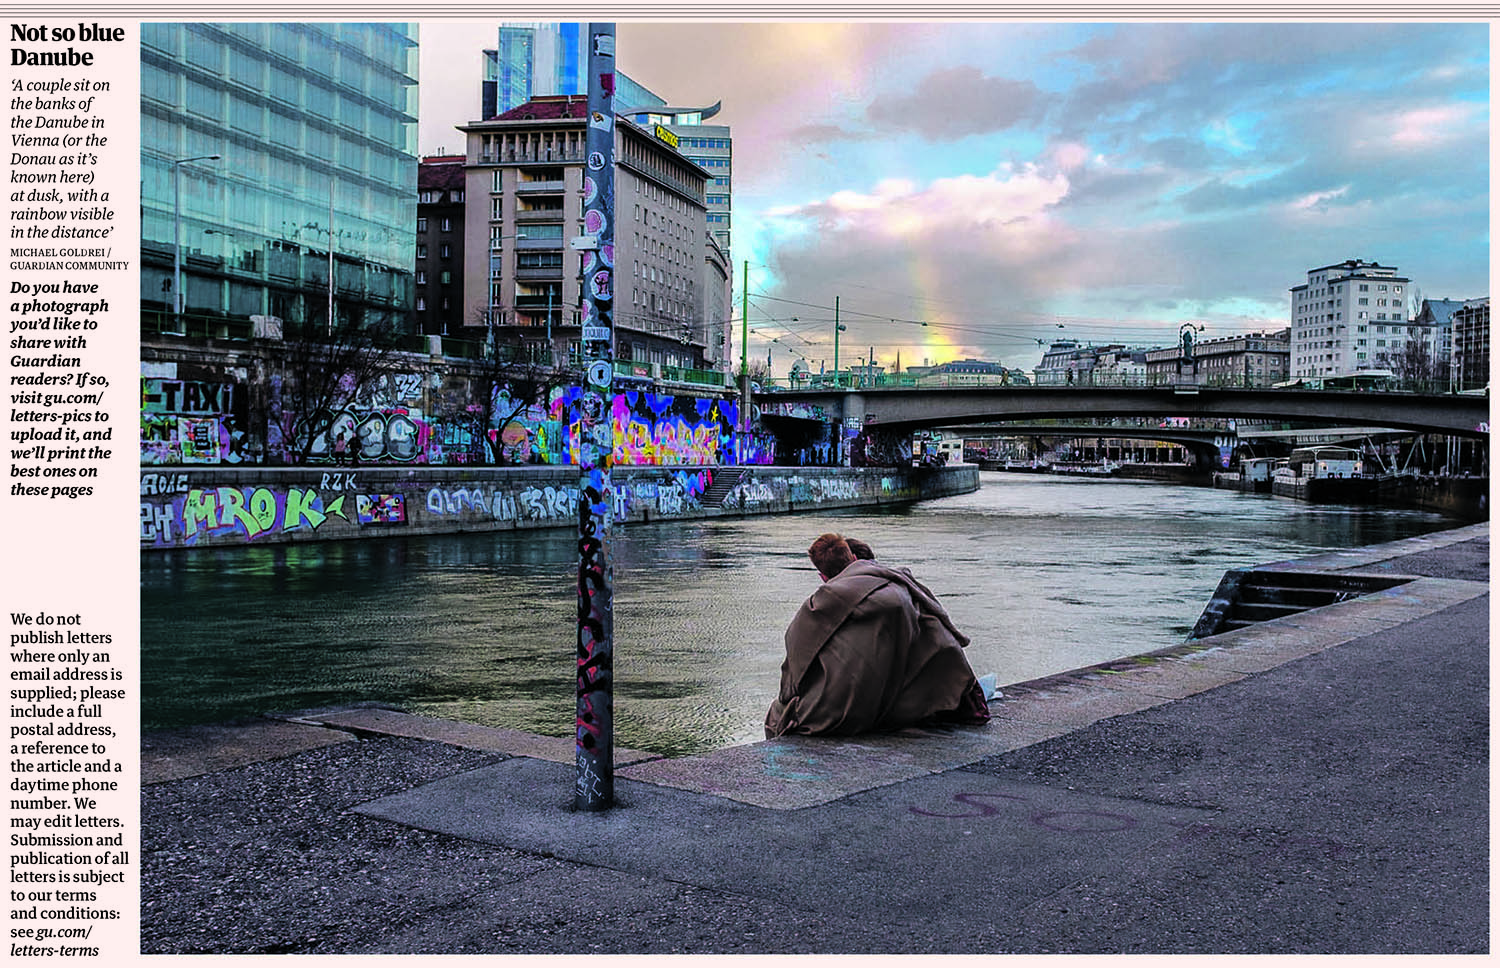 The Guardian - On Mar 11 2019 my photo 'Rainbow's End', taken along the banks of the Donau (aka the Danube) in Vienna, was featured on the letters page in The Guardian.